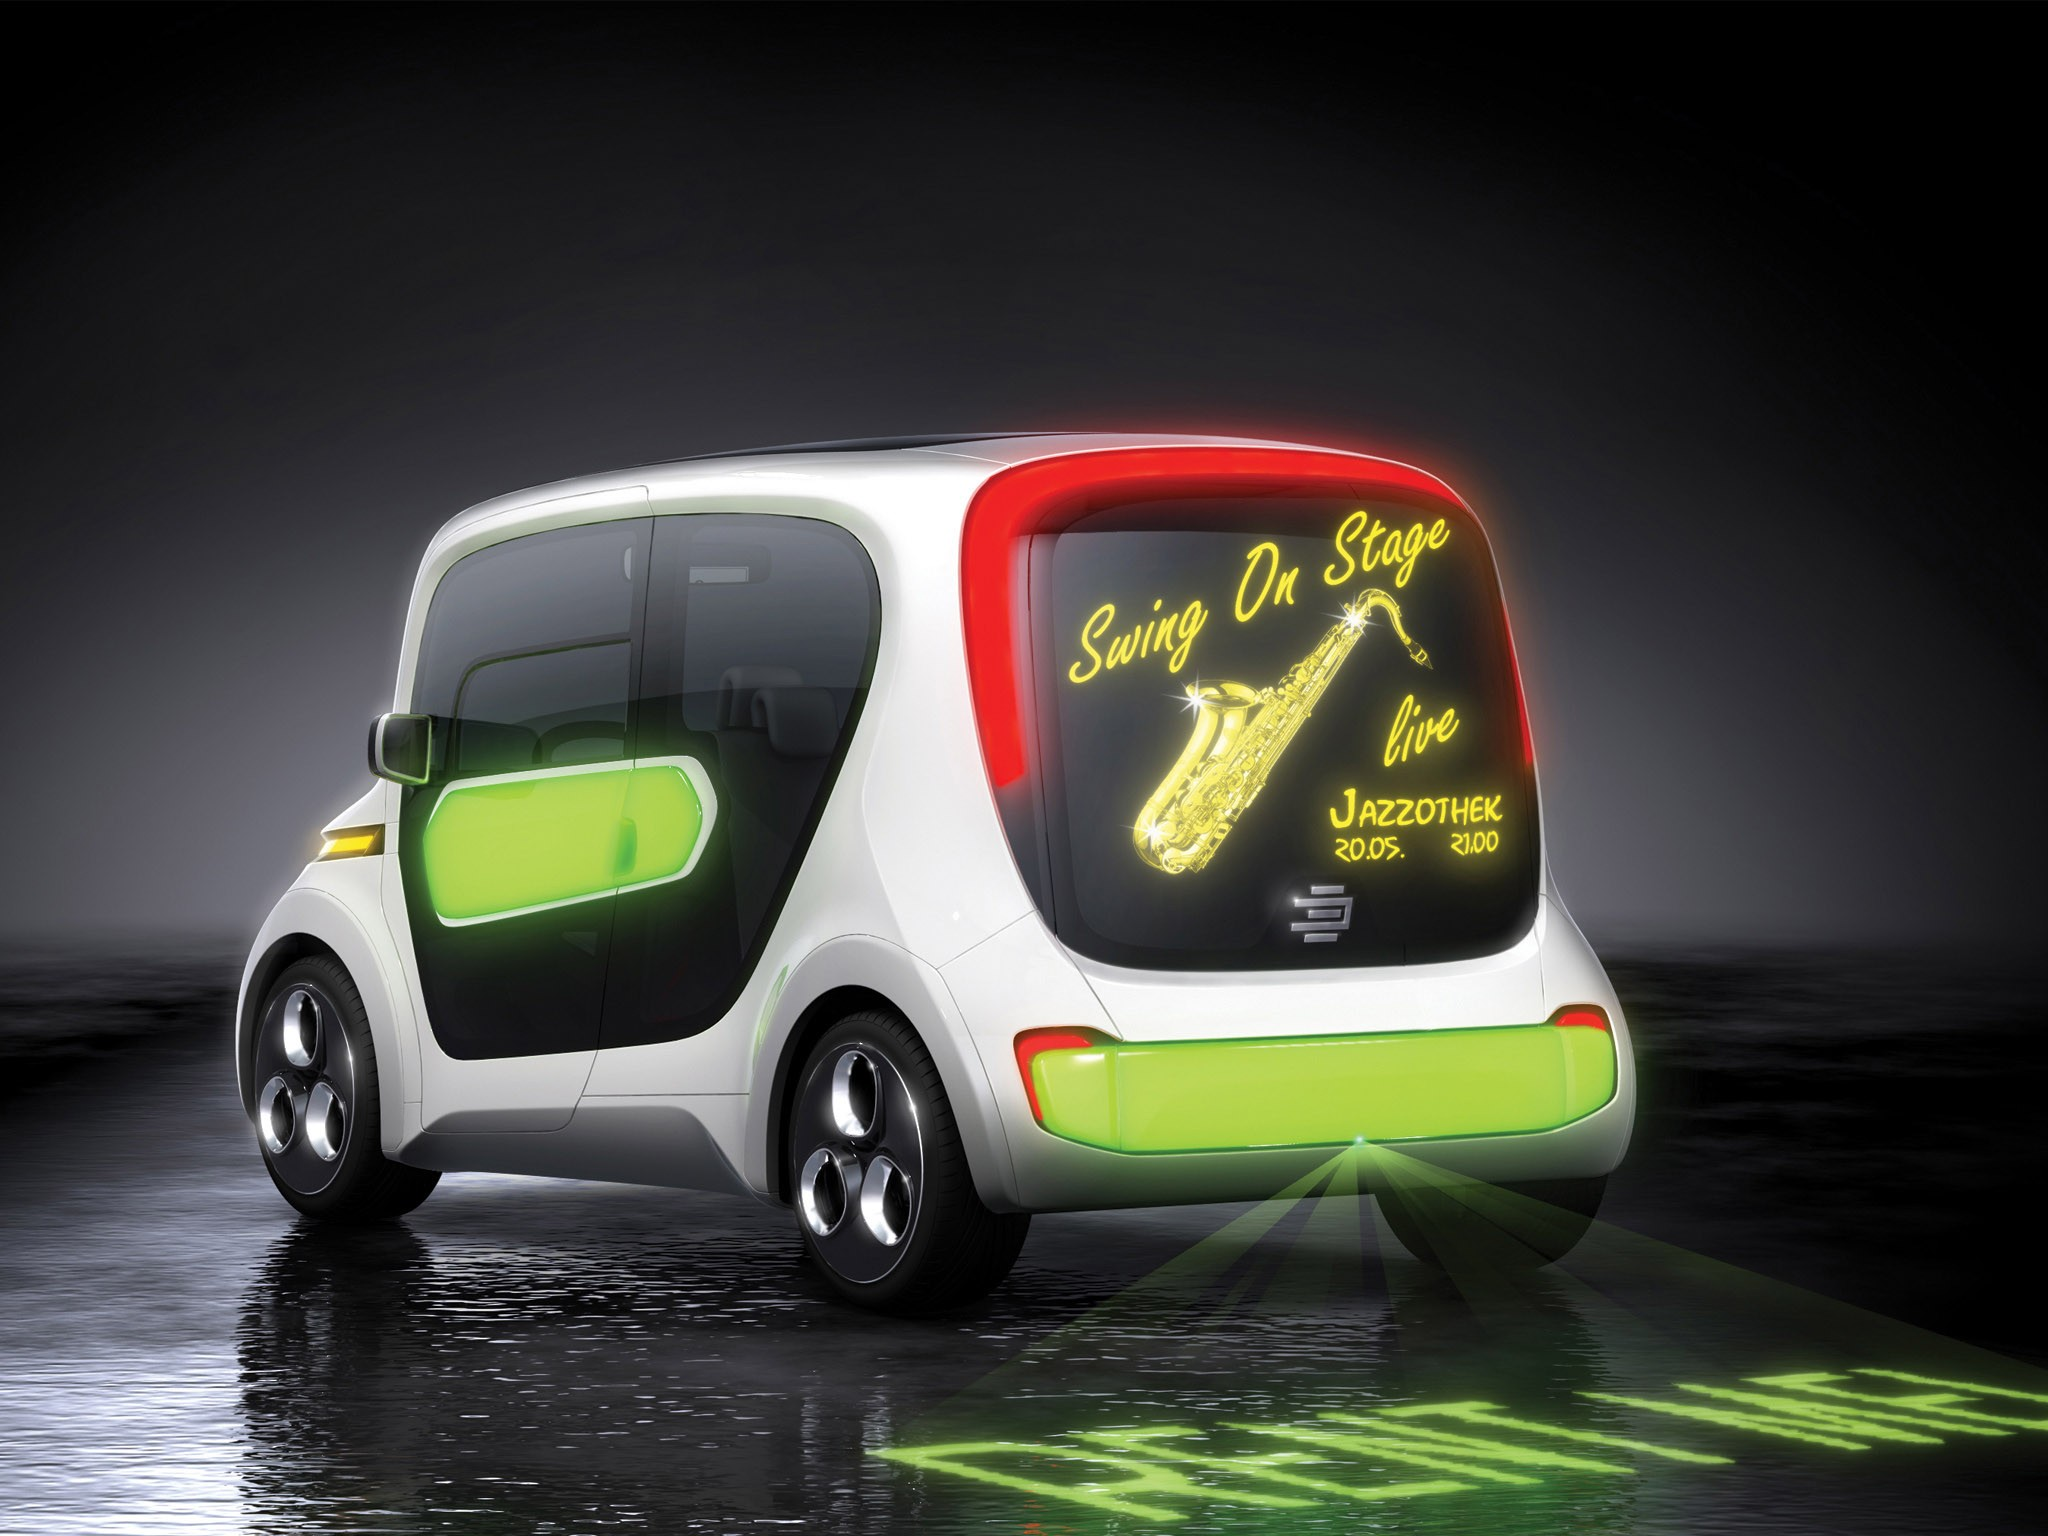 2011 Edag Light Car Sharing Concept